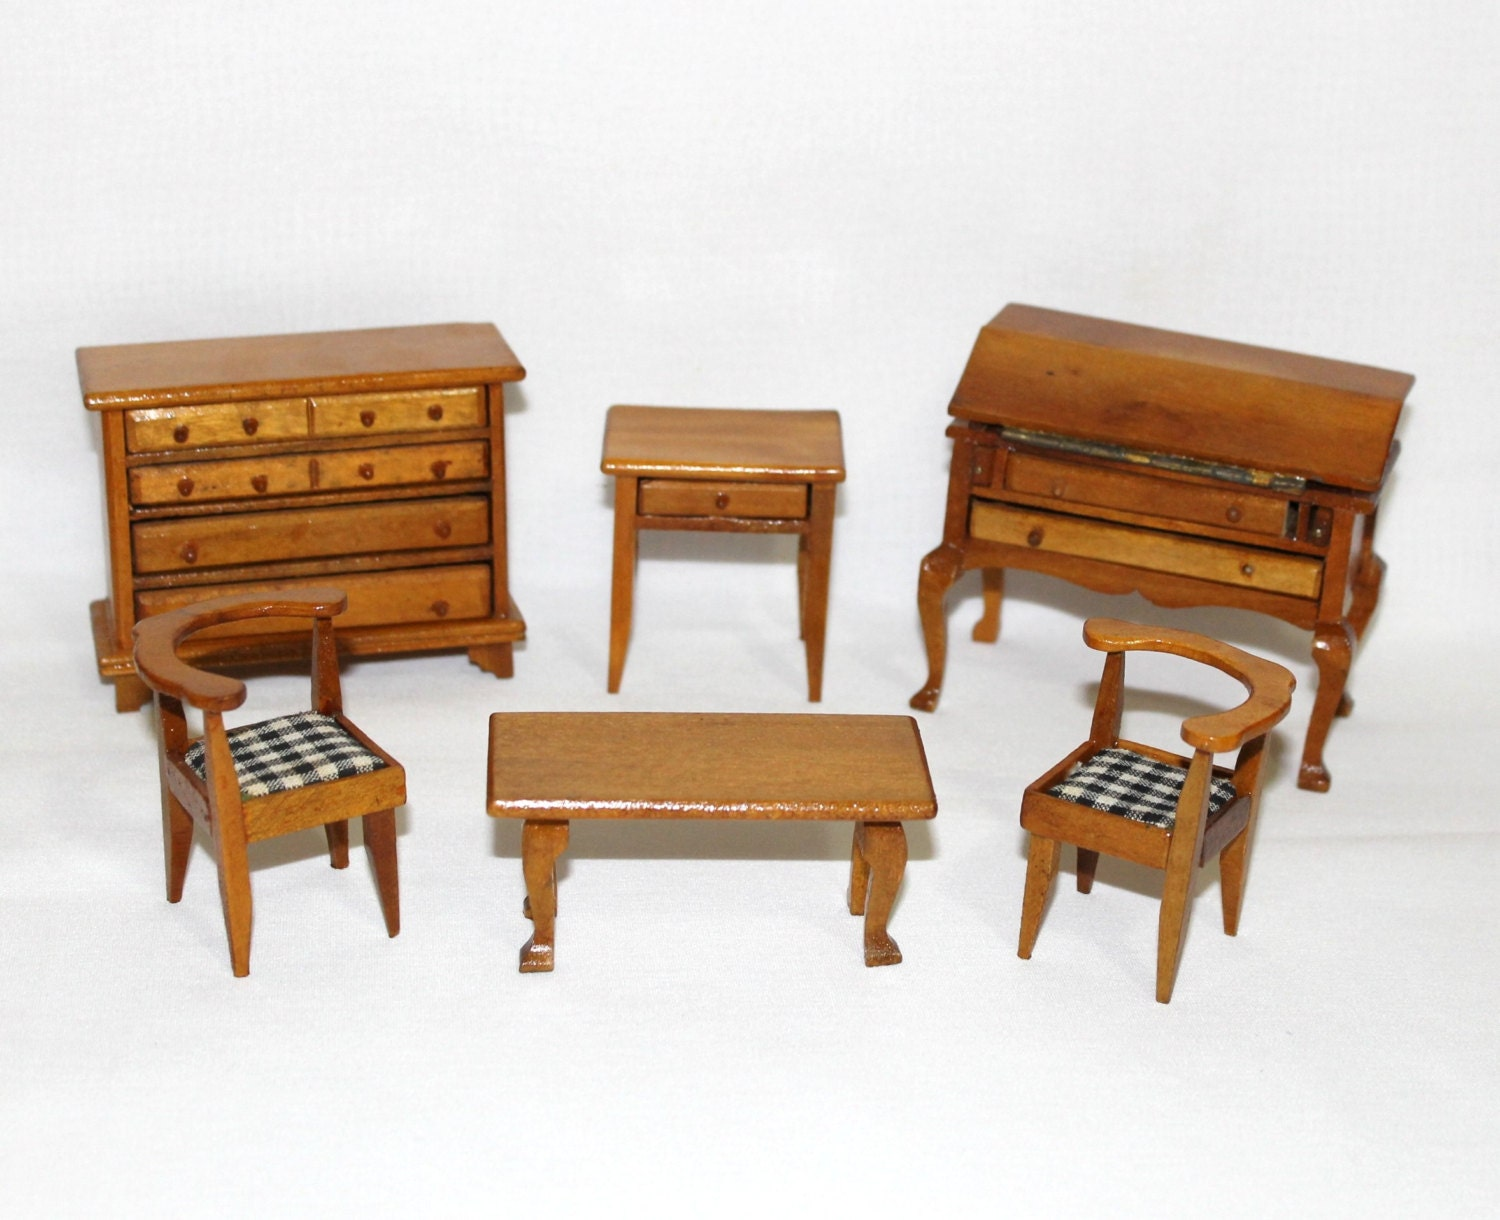 Vintage Lot Of Wooden Dollhouse Furniture 6 Piece Lot